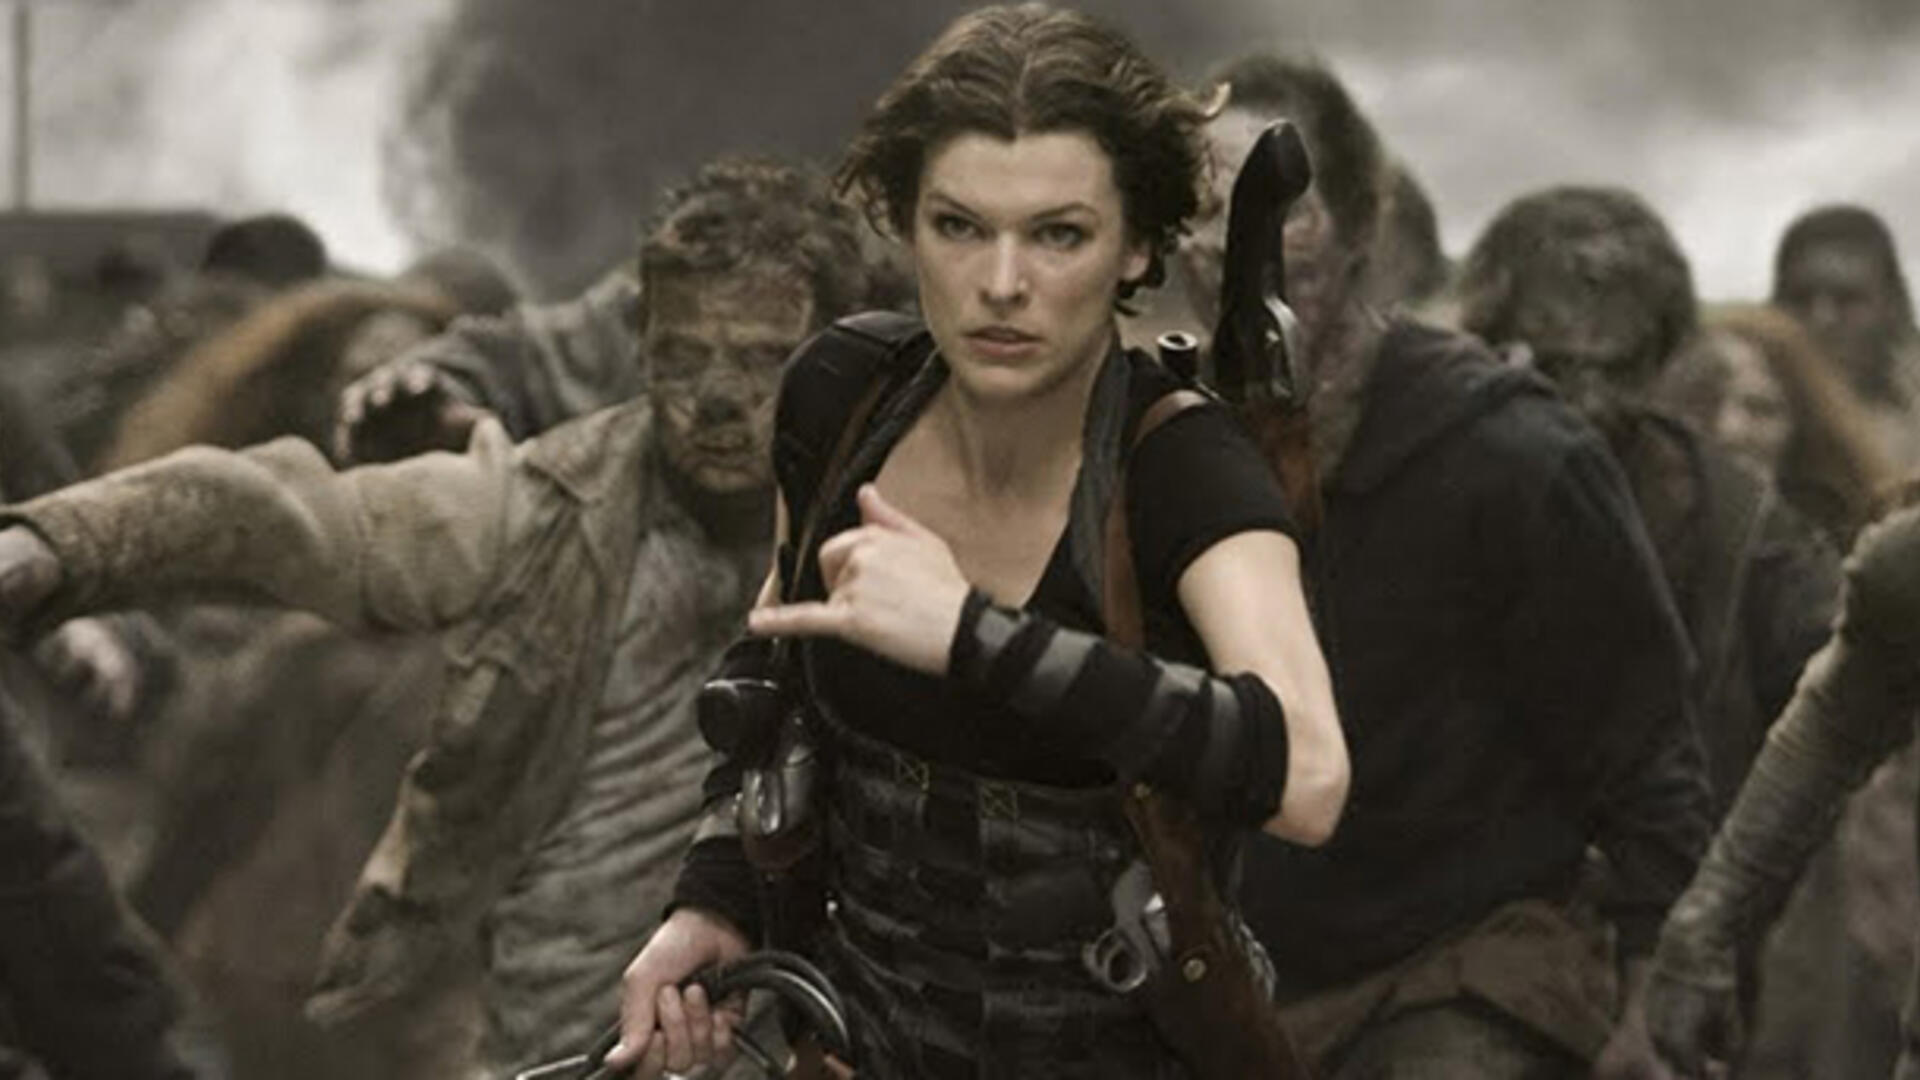 The Resident Evil Film Franchise is Getting a Six-Movie Reboot, Just Because